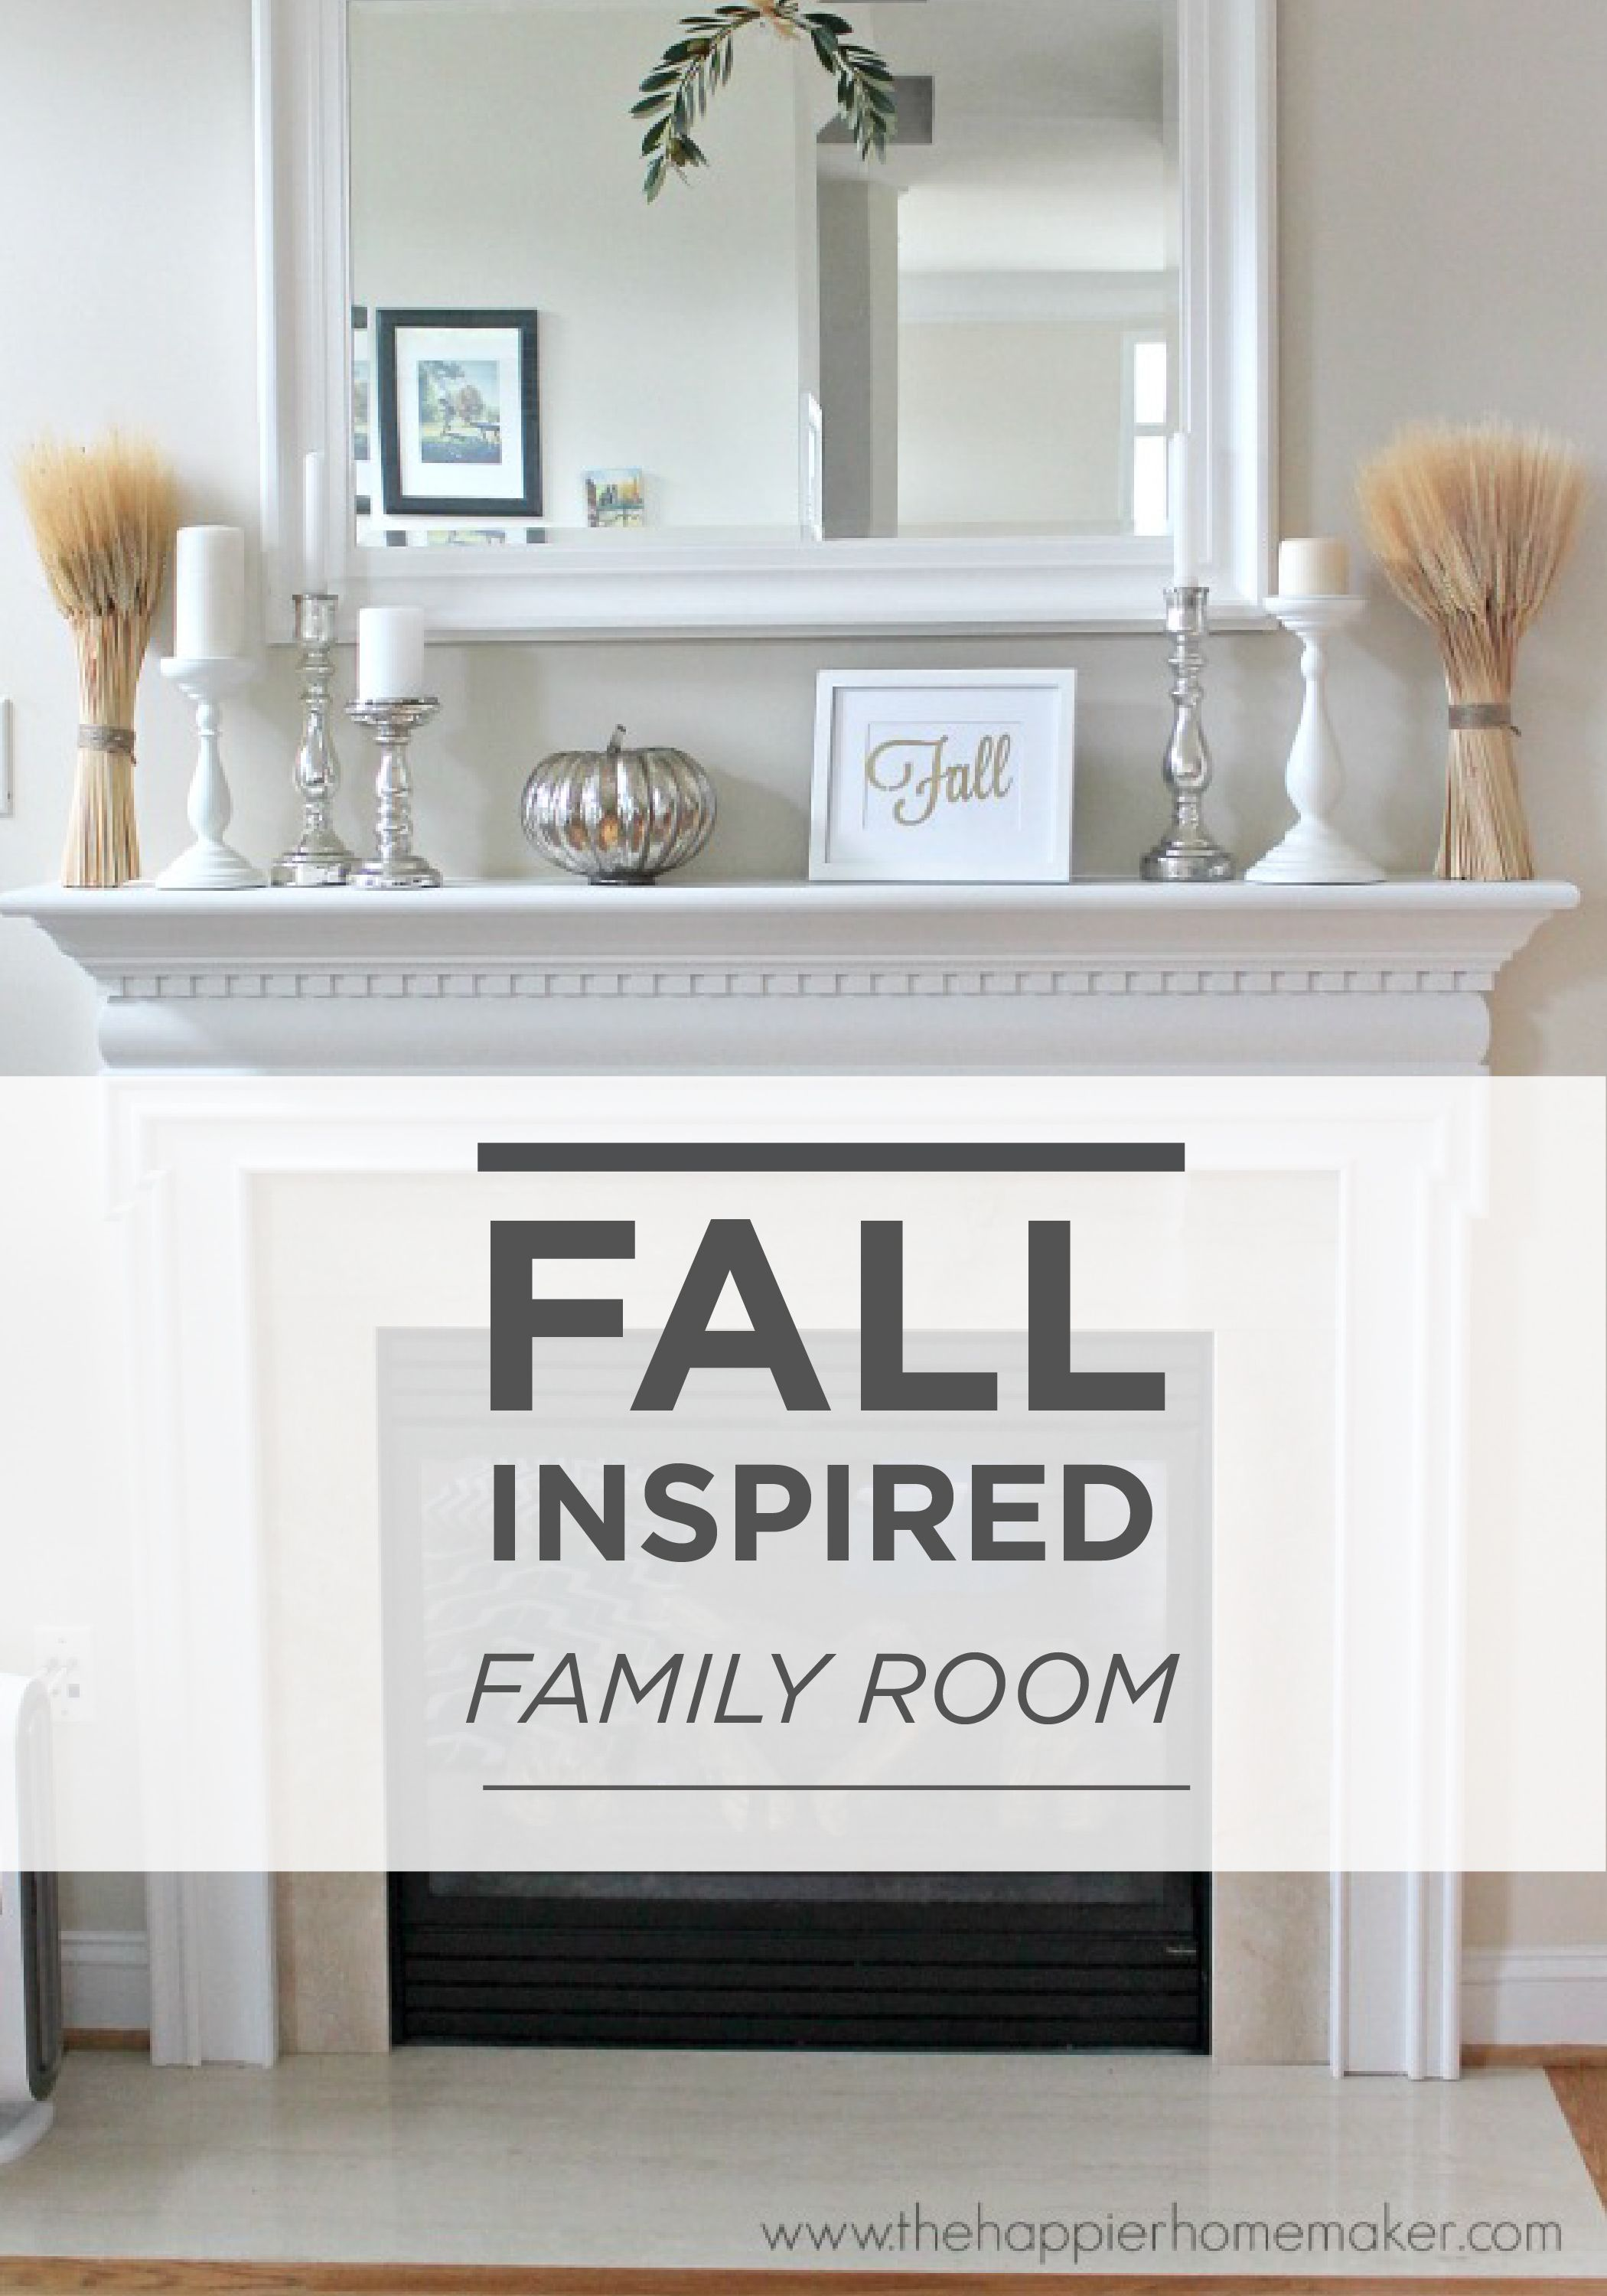 Keep Your Fall Decor Simple With A White And Silver Color Scheme Paired  With Warm, Rustic Accents. Use BEHR Paint In Alpine Frost On The Walls And  Add ...